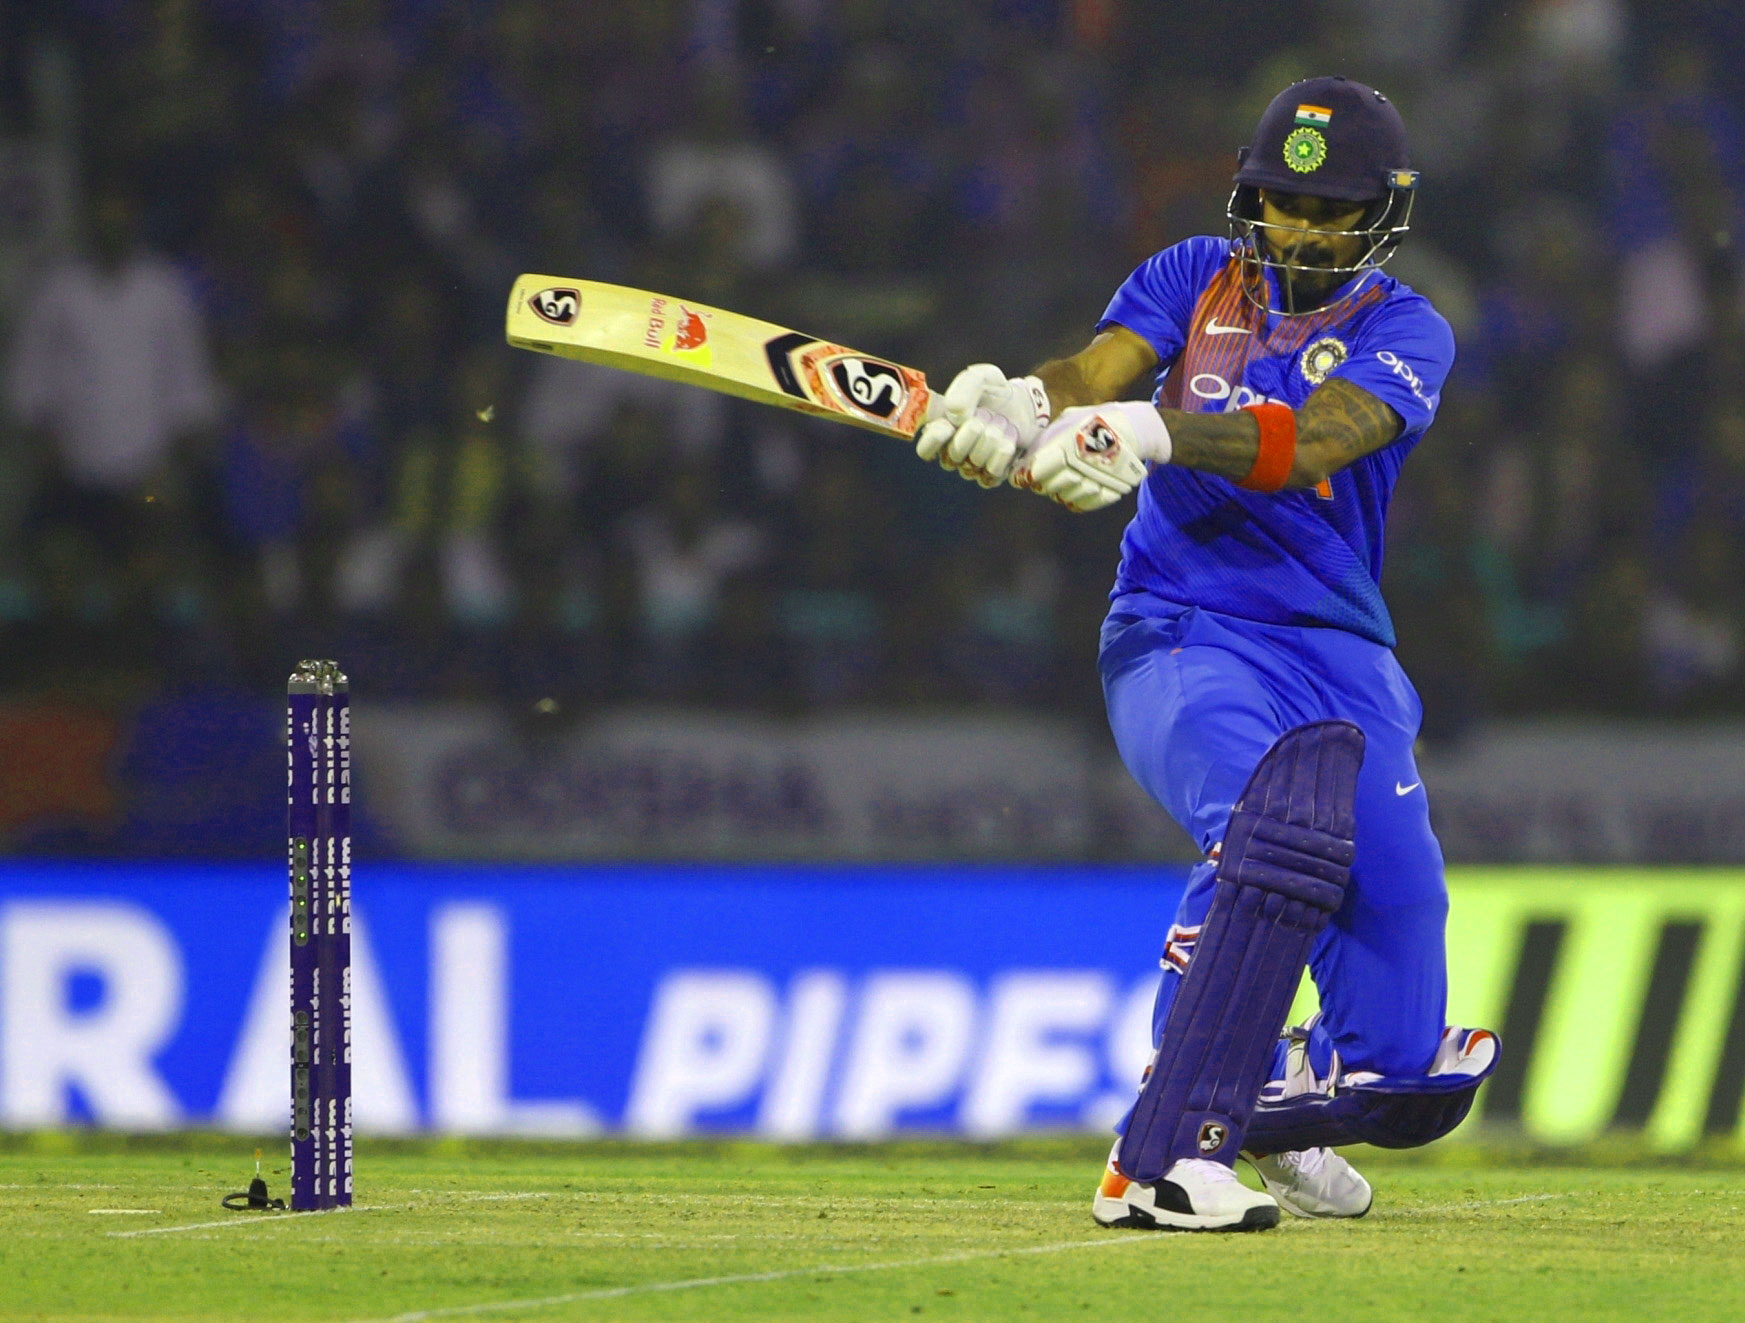 INDIAN CRICKET TEAM PLAYER IMAGES WALLPAPER PICS FREE